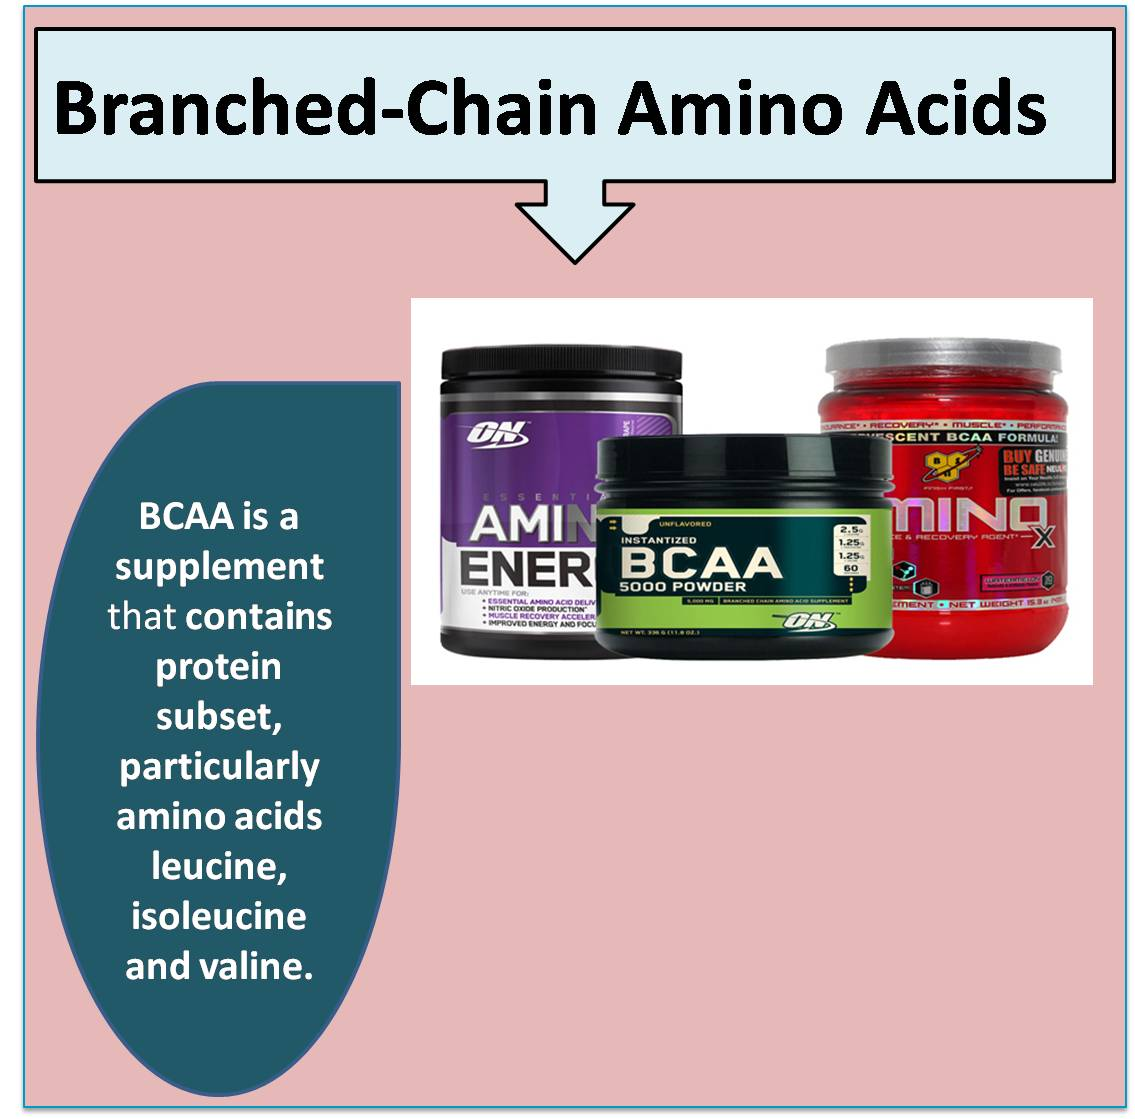 Branched-Chain Amino Acids